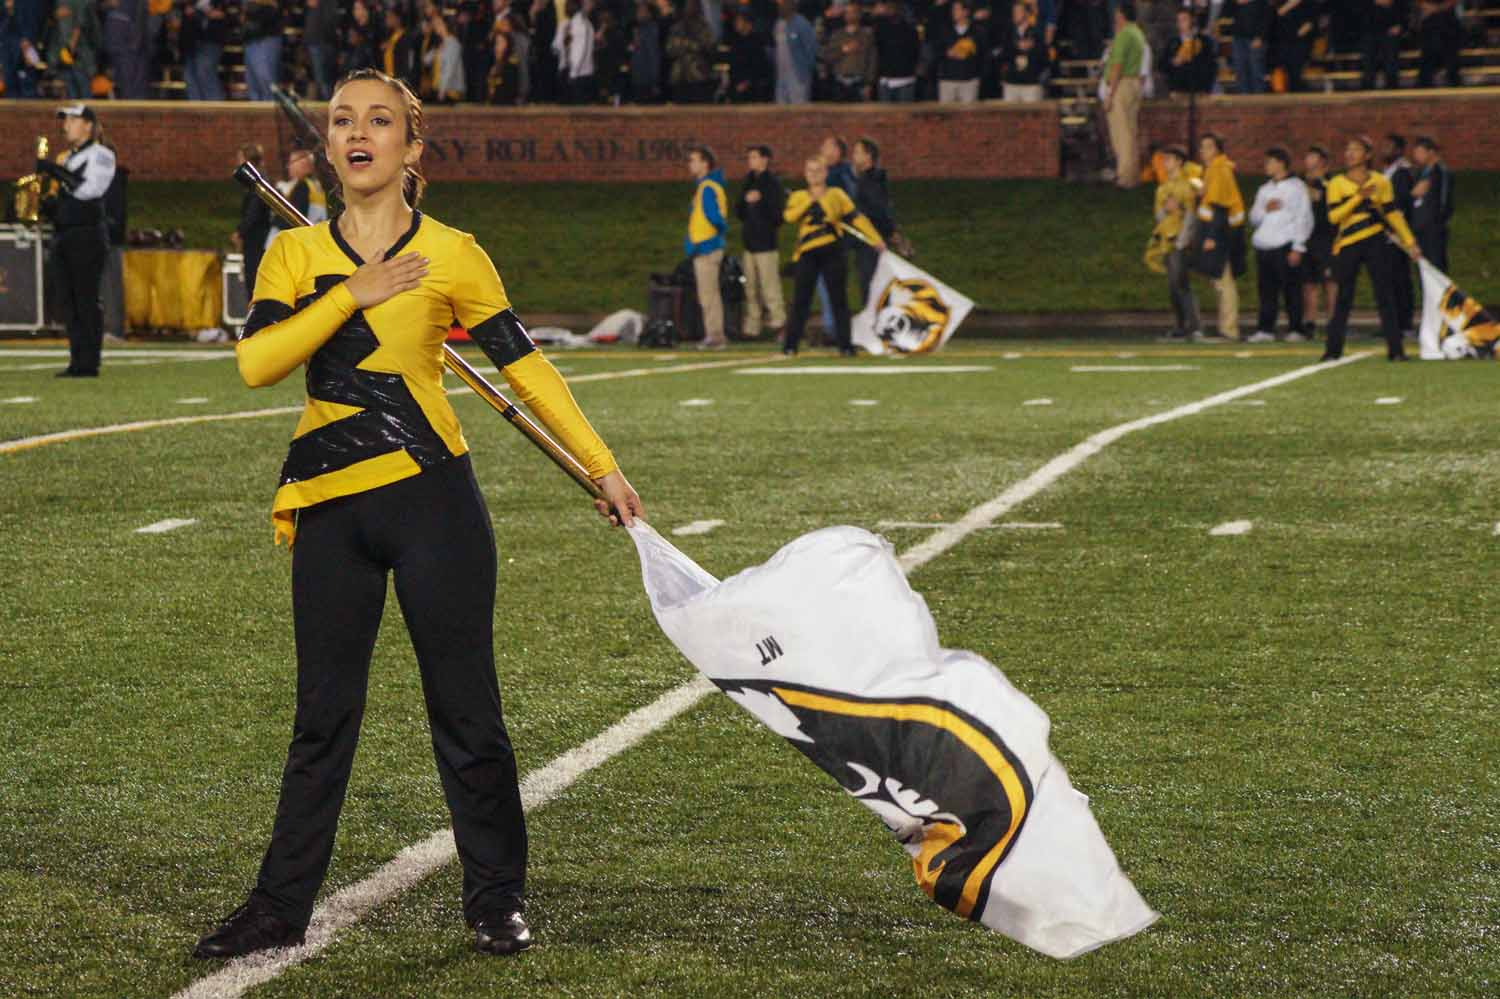 A member of the Marching Mizzou Color Guard sings the National Anthem before the game. Photo by Allison Collins.